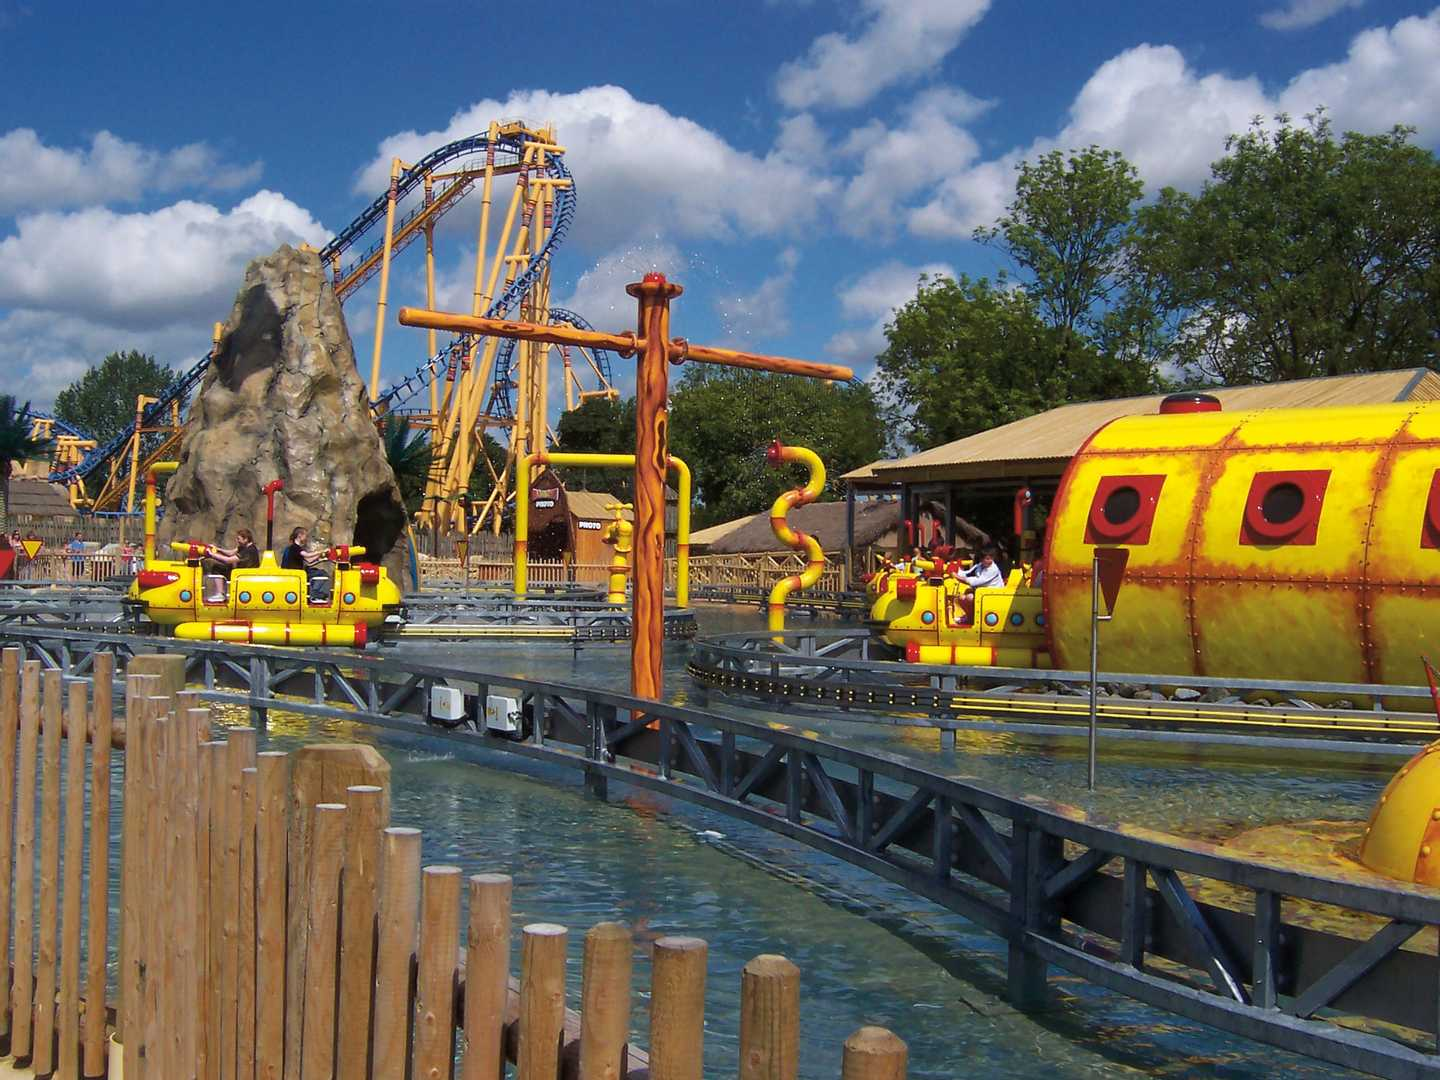 Yellow and red water ride at Flamingo Land